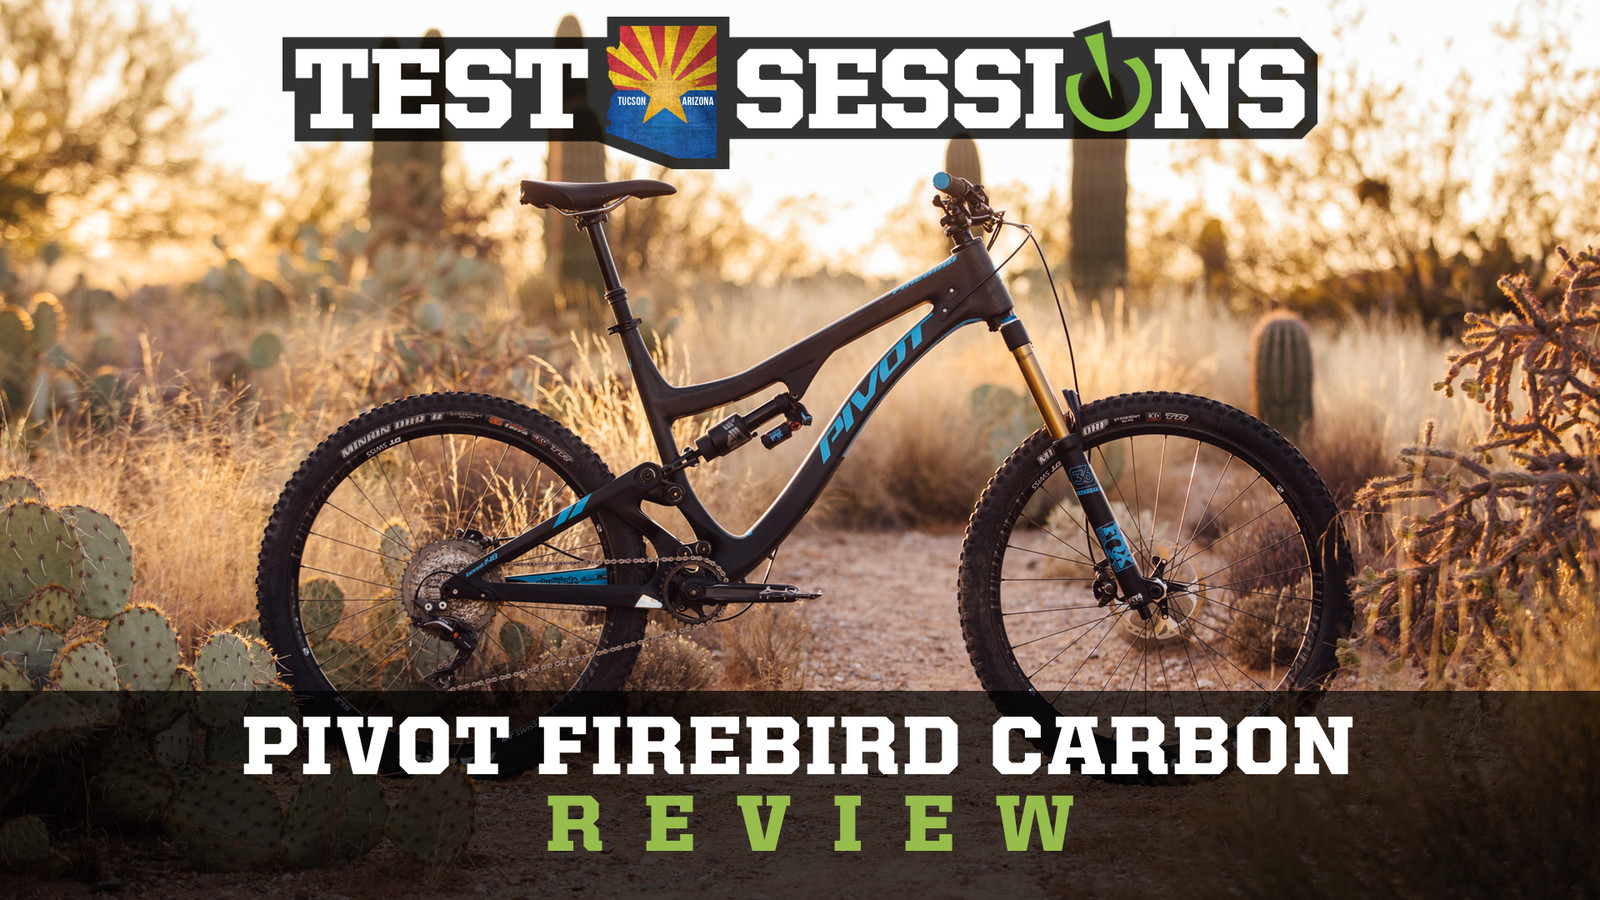 Review - 2017 Pivot Firebird Carbon from Vital MTB Test Sessions